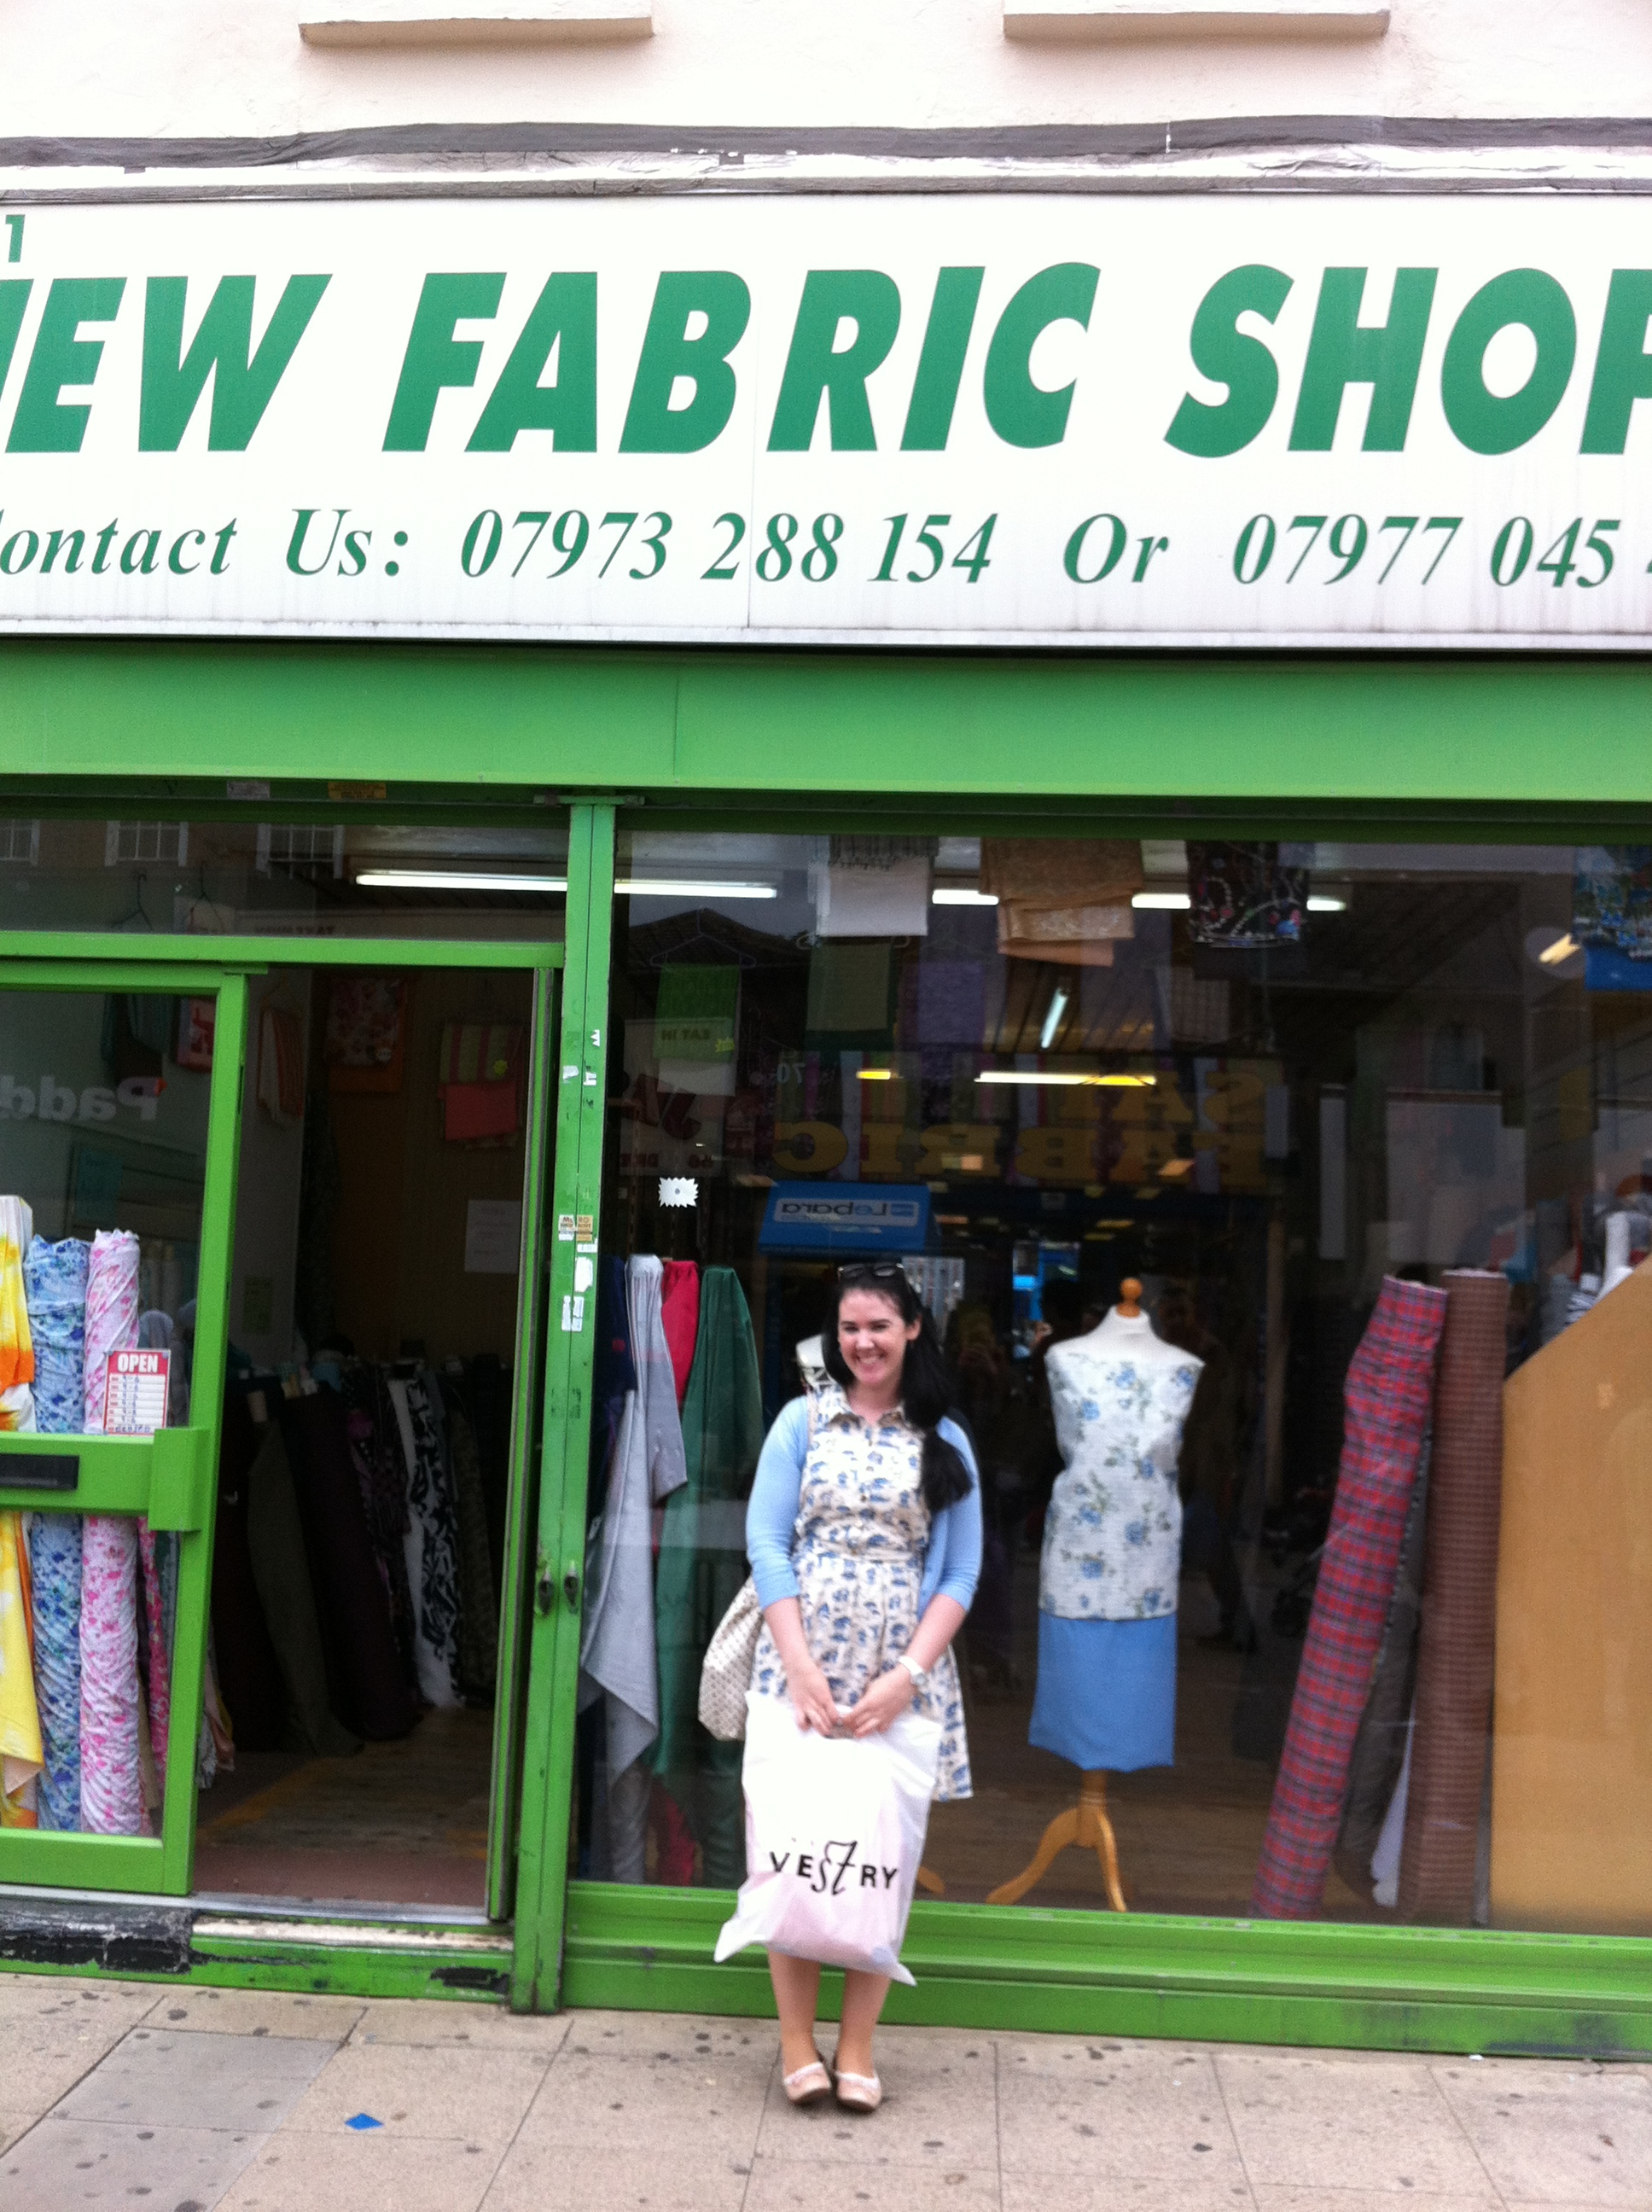 Best Fabric Stores Near Me - March 2021: Find Nearby